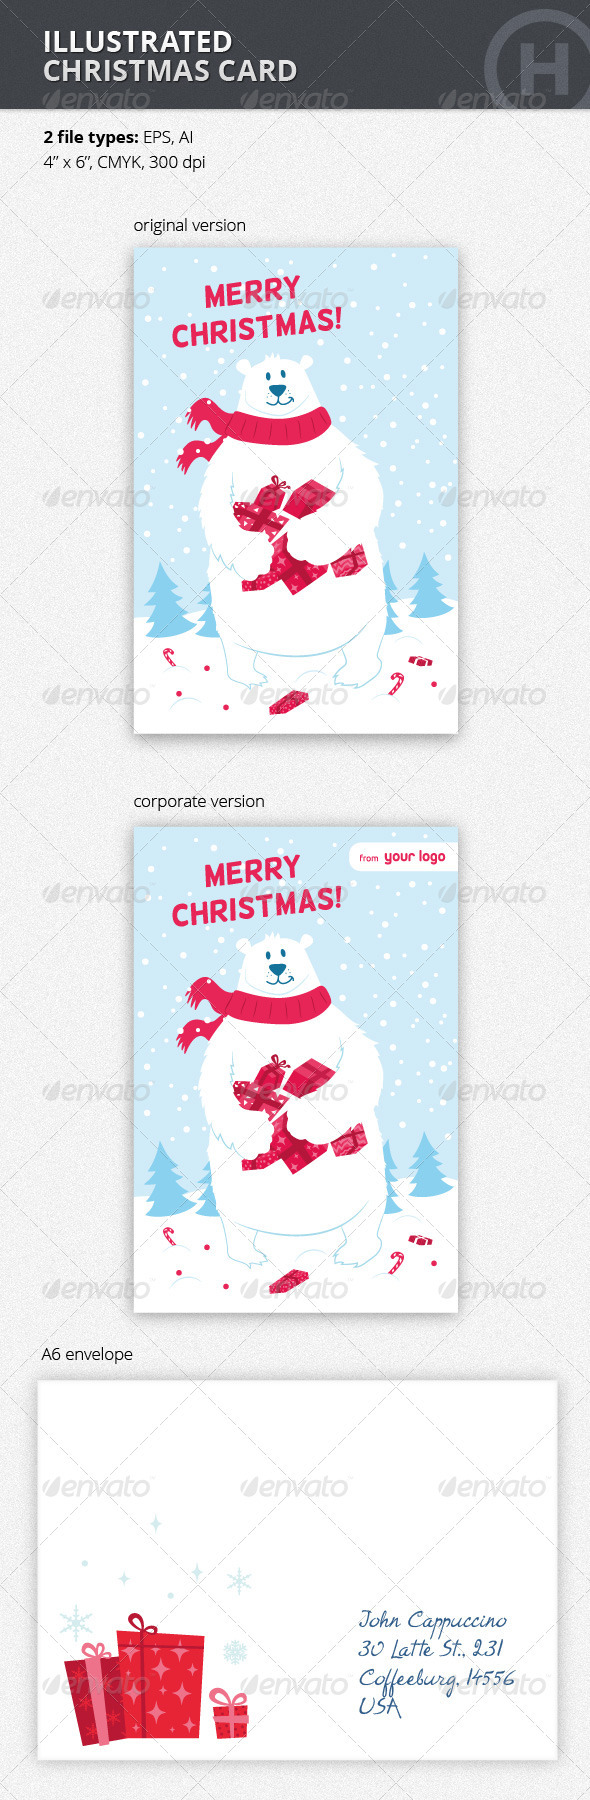 GraphicRiver Illustrated Christmas Card with Polar Bear 3576549